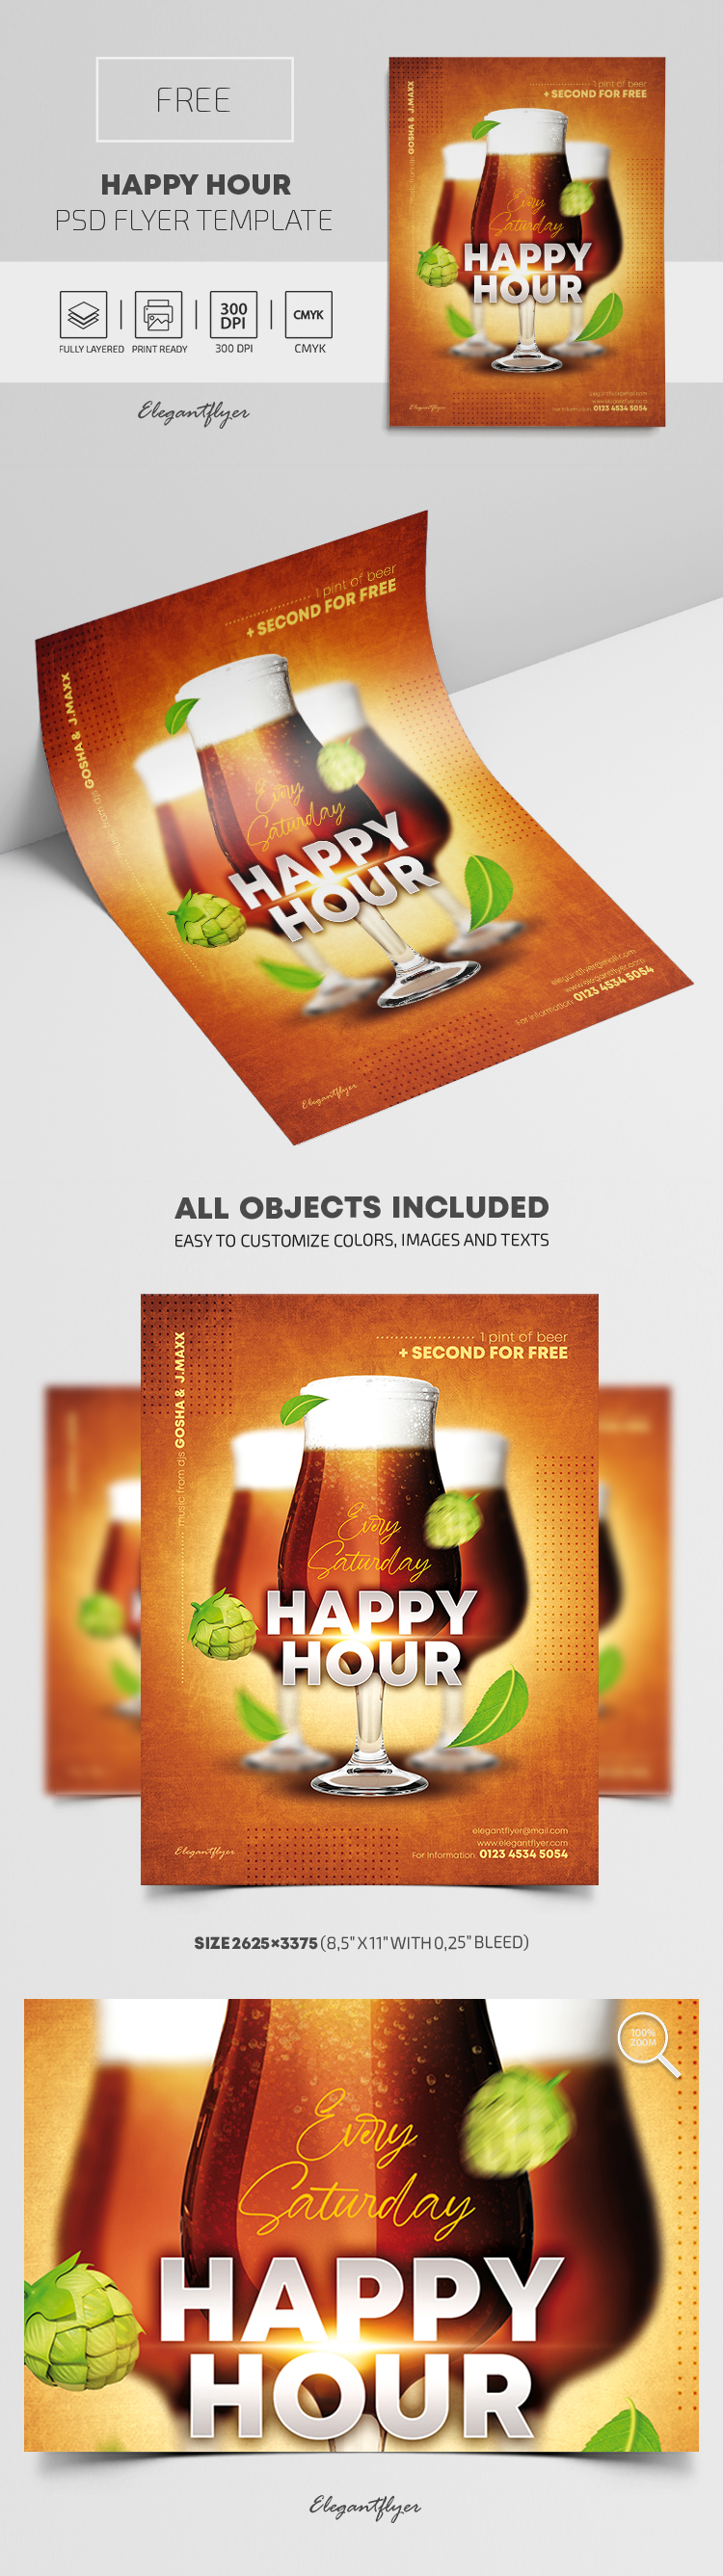 Happy Hour – Free PSD Flyer Template